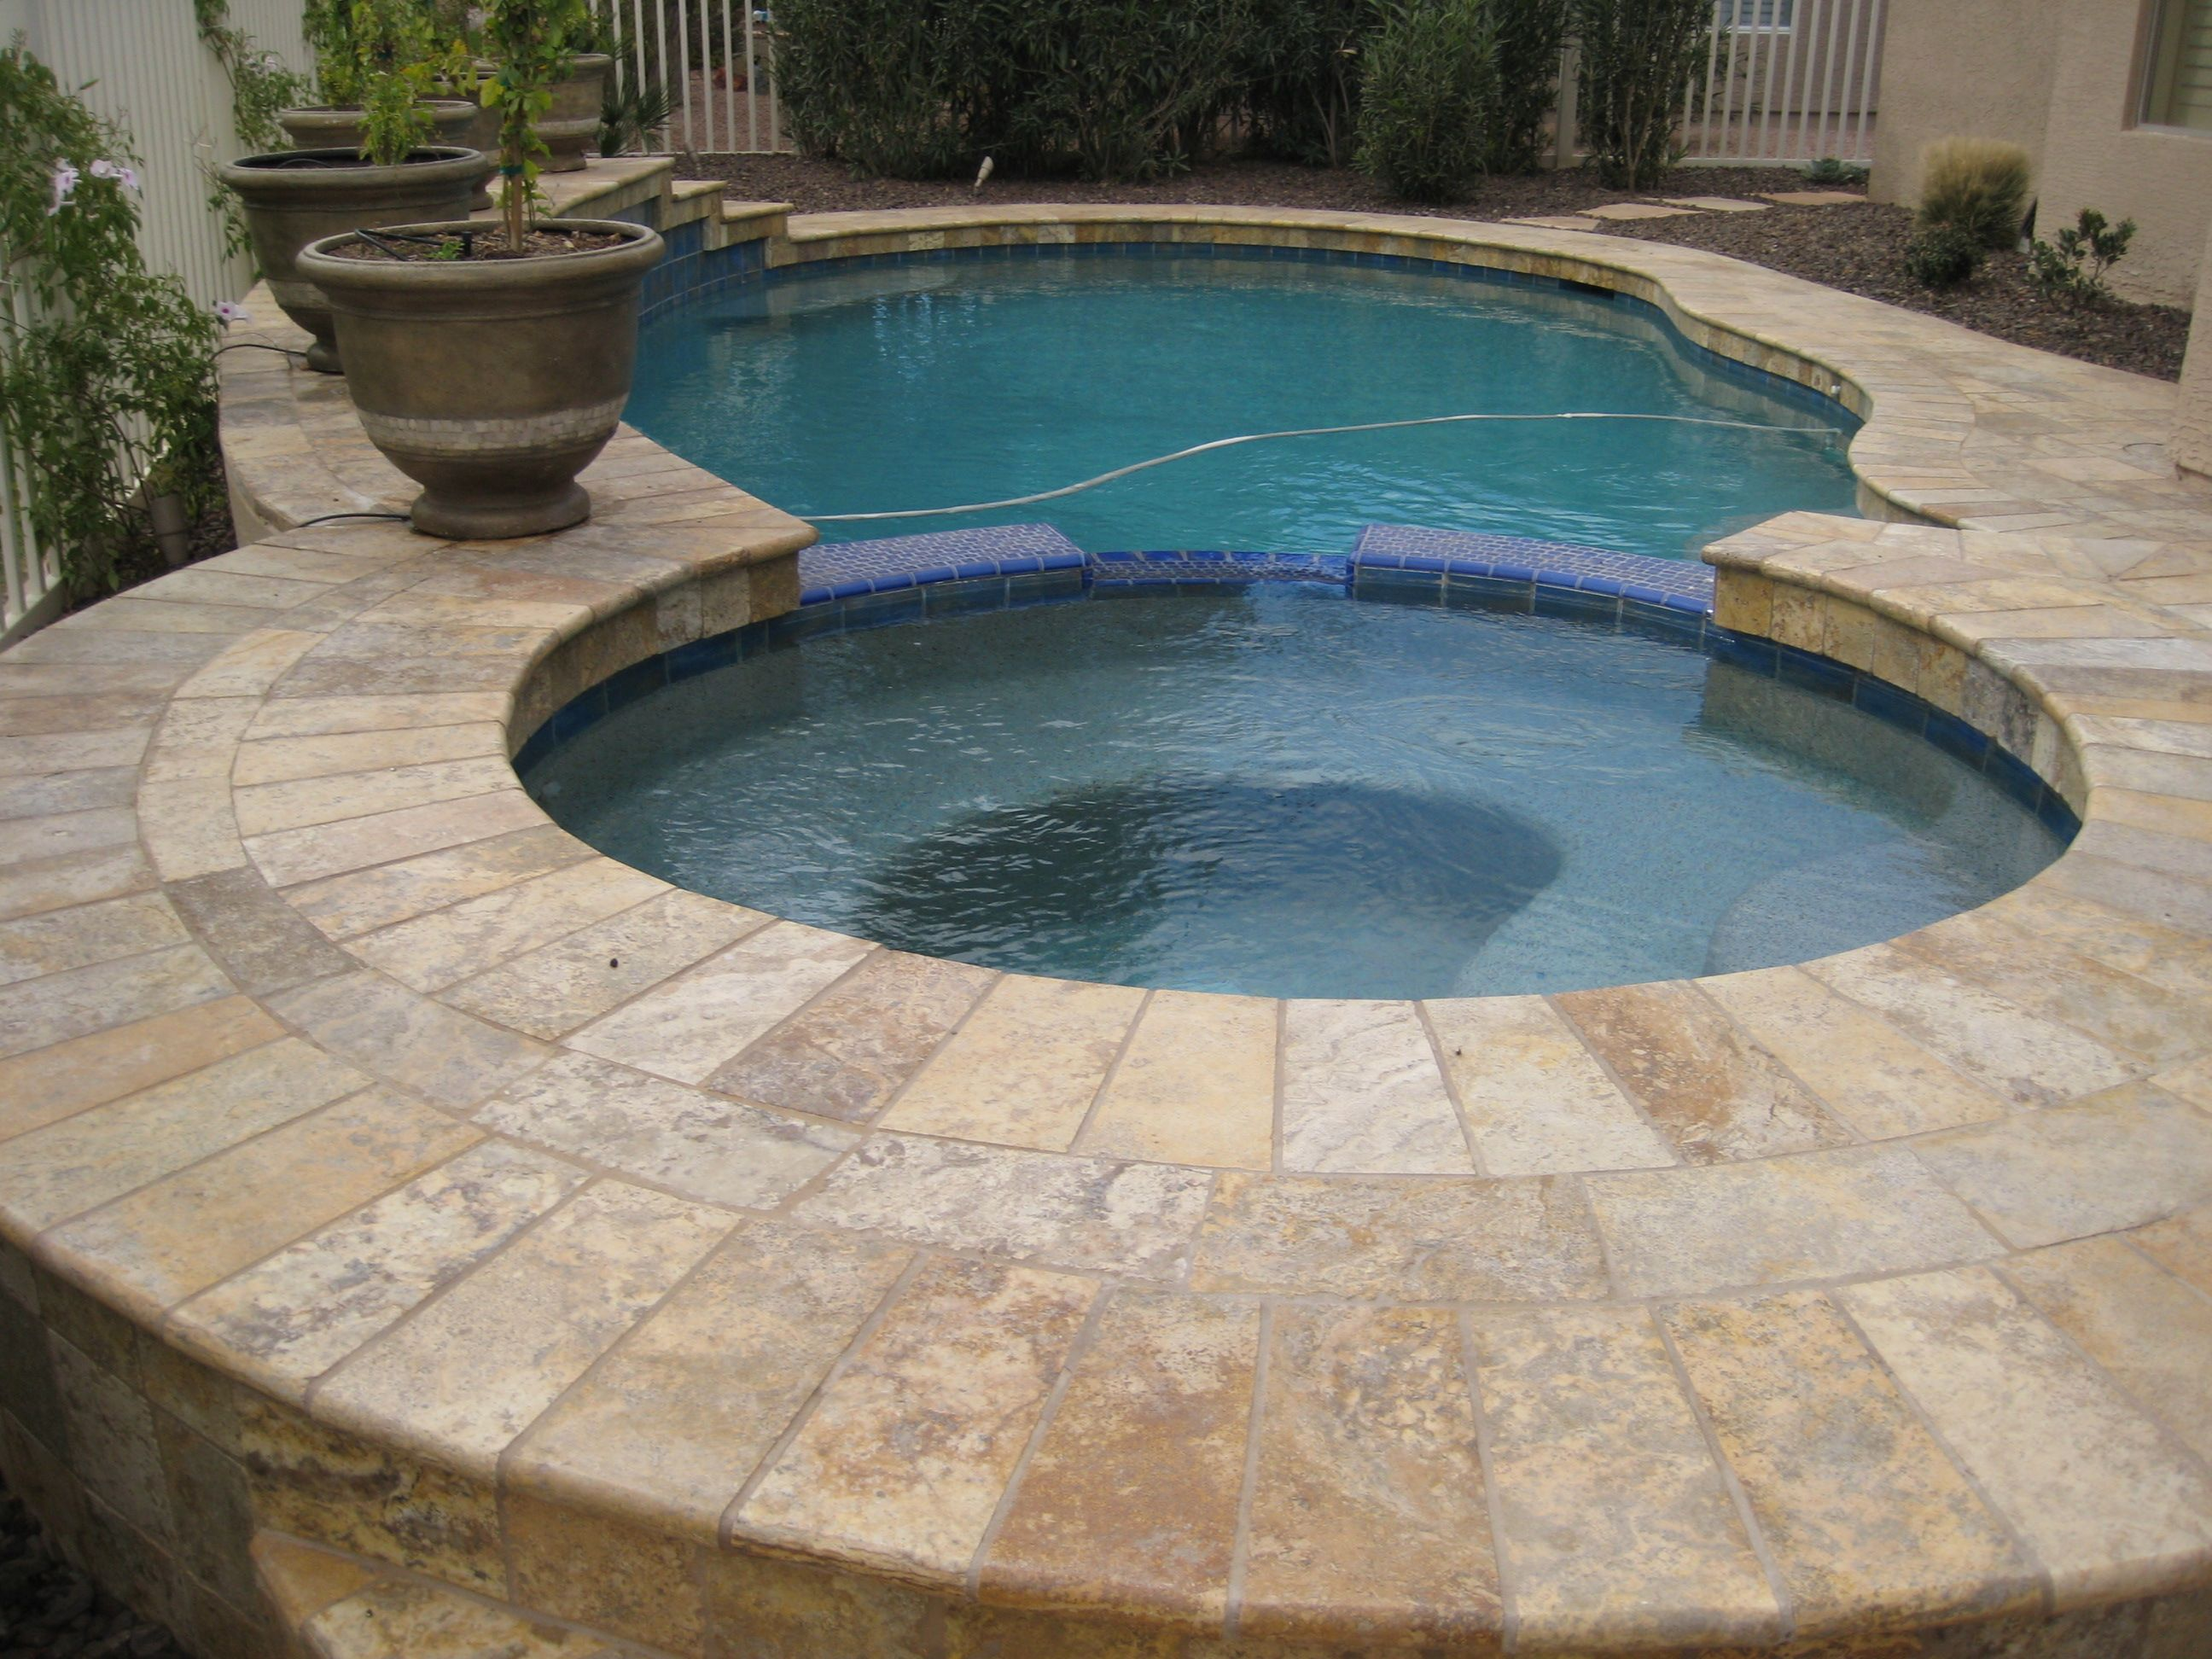 Outside Hardscapes | Hardscapes U0026 Pools | Outside Living Concepts | Outdoor  Possibilities | Pinterest | Swimming Pools, Backyard And Kitchens